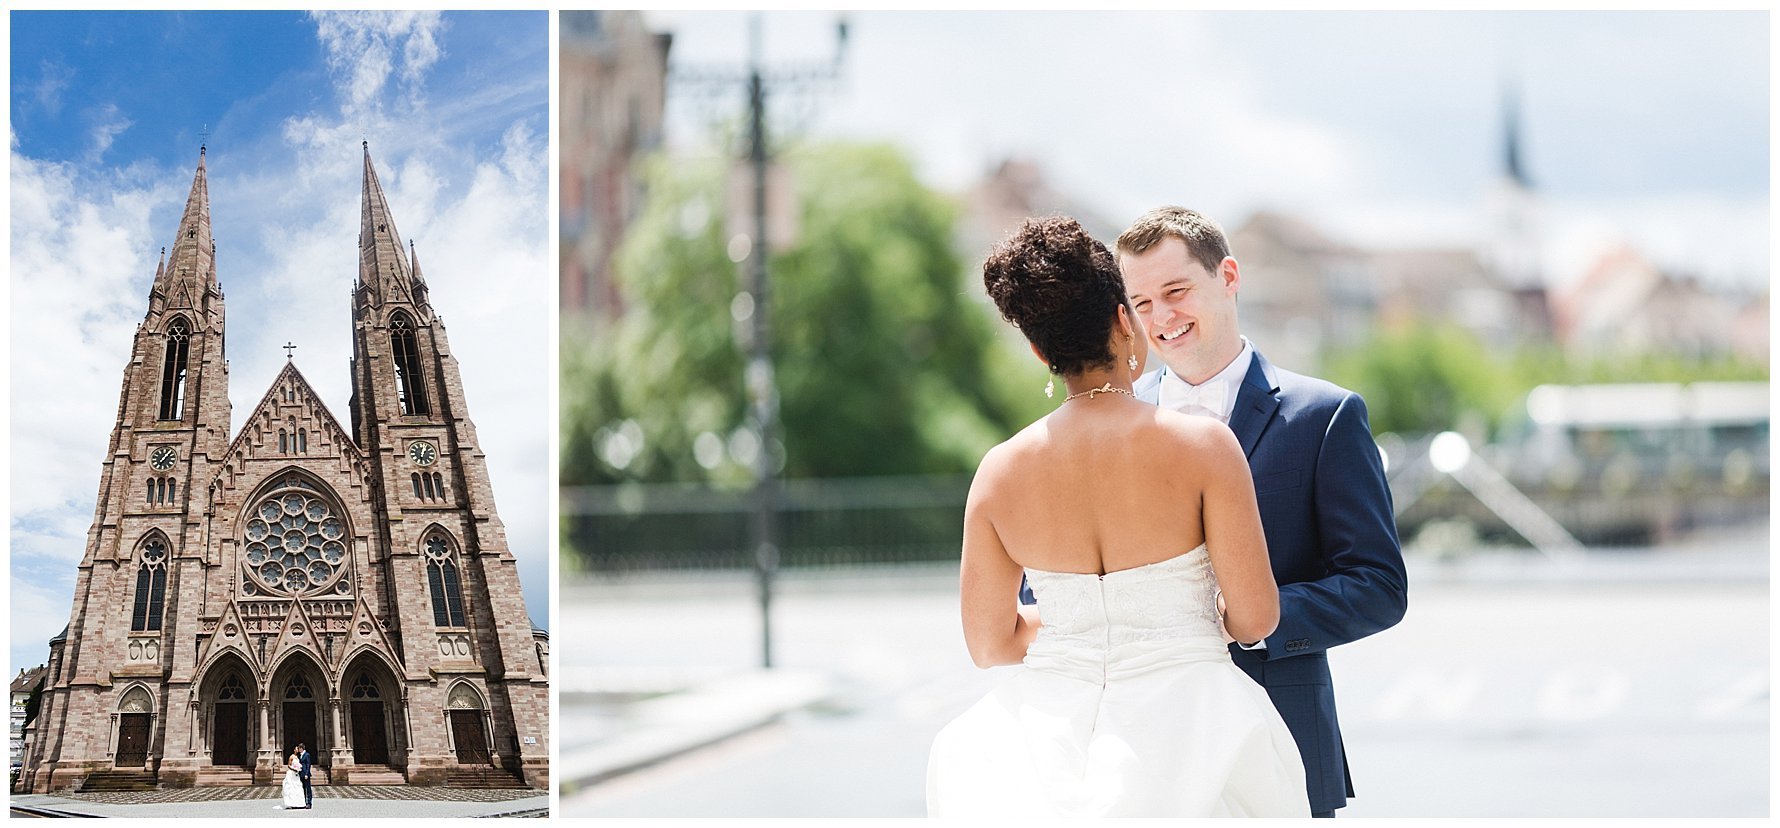 French American Wedding in Strasbourg France